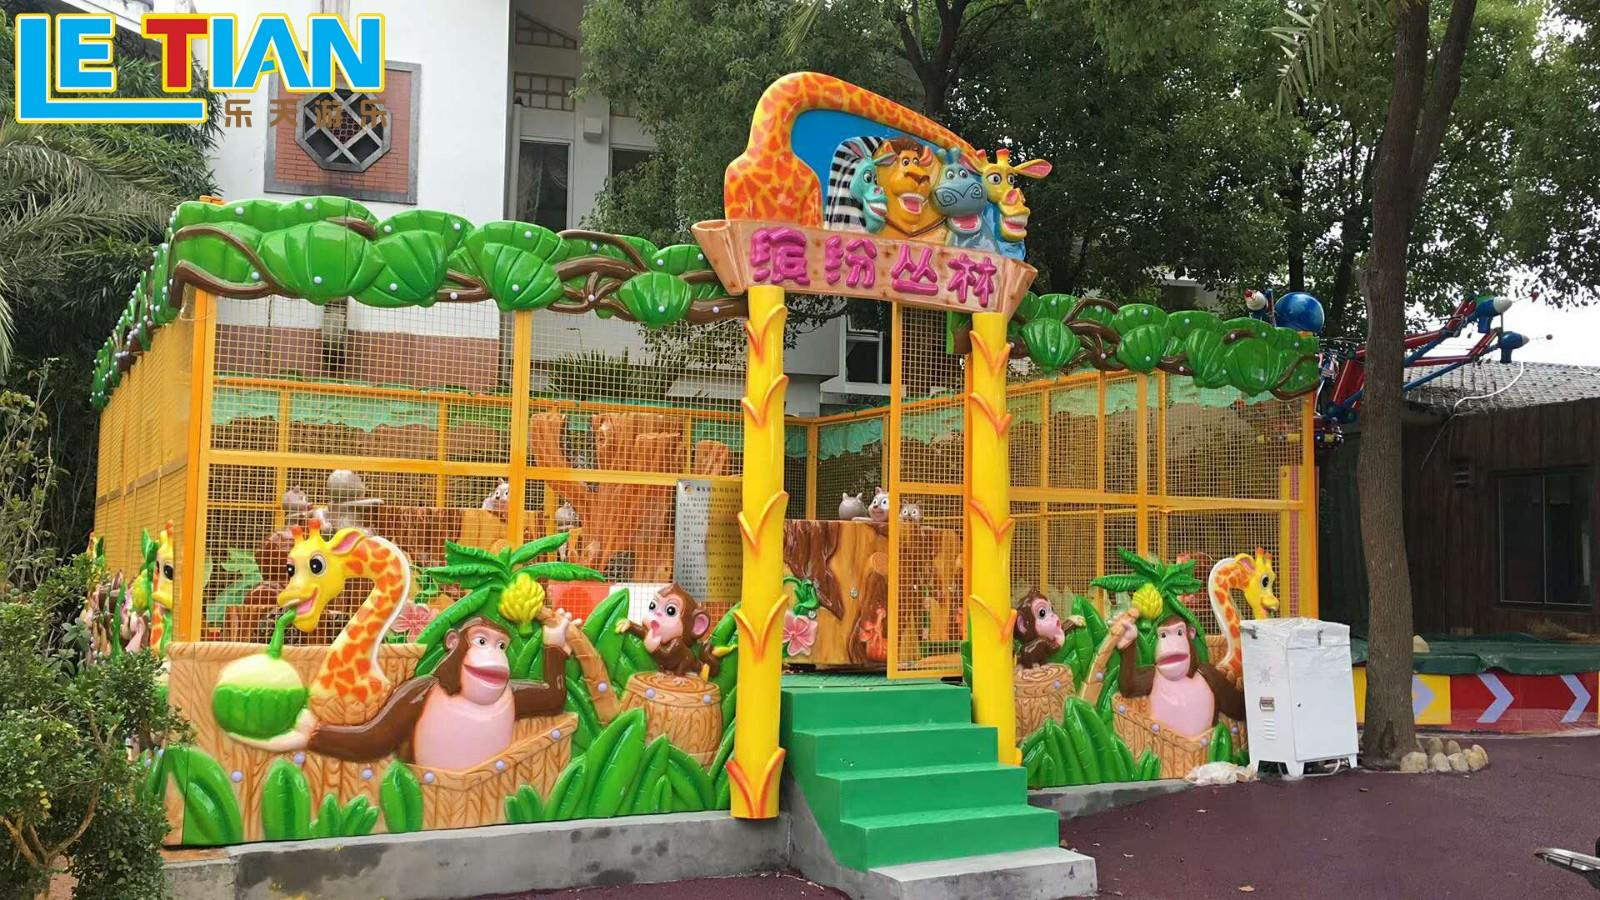 entertainment amusement park steam trains for sale China life squares LETIAN-1